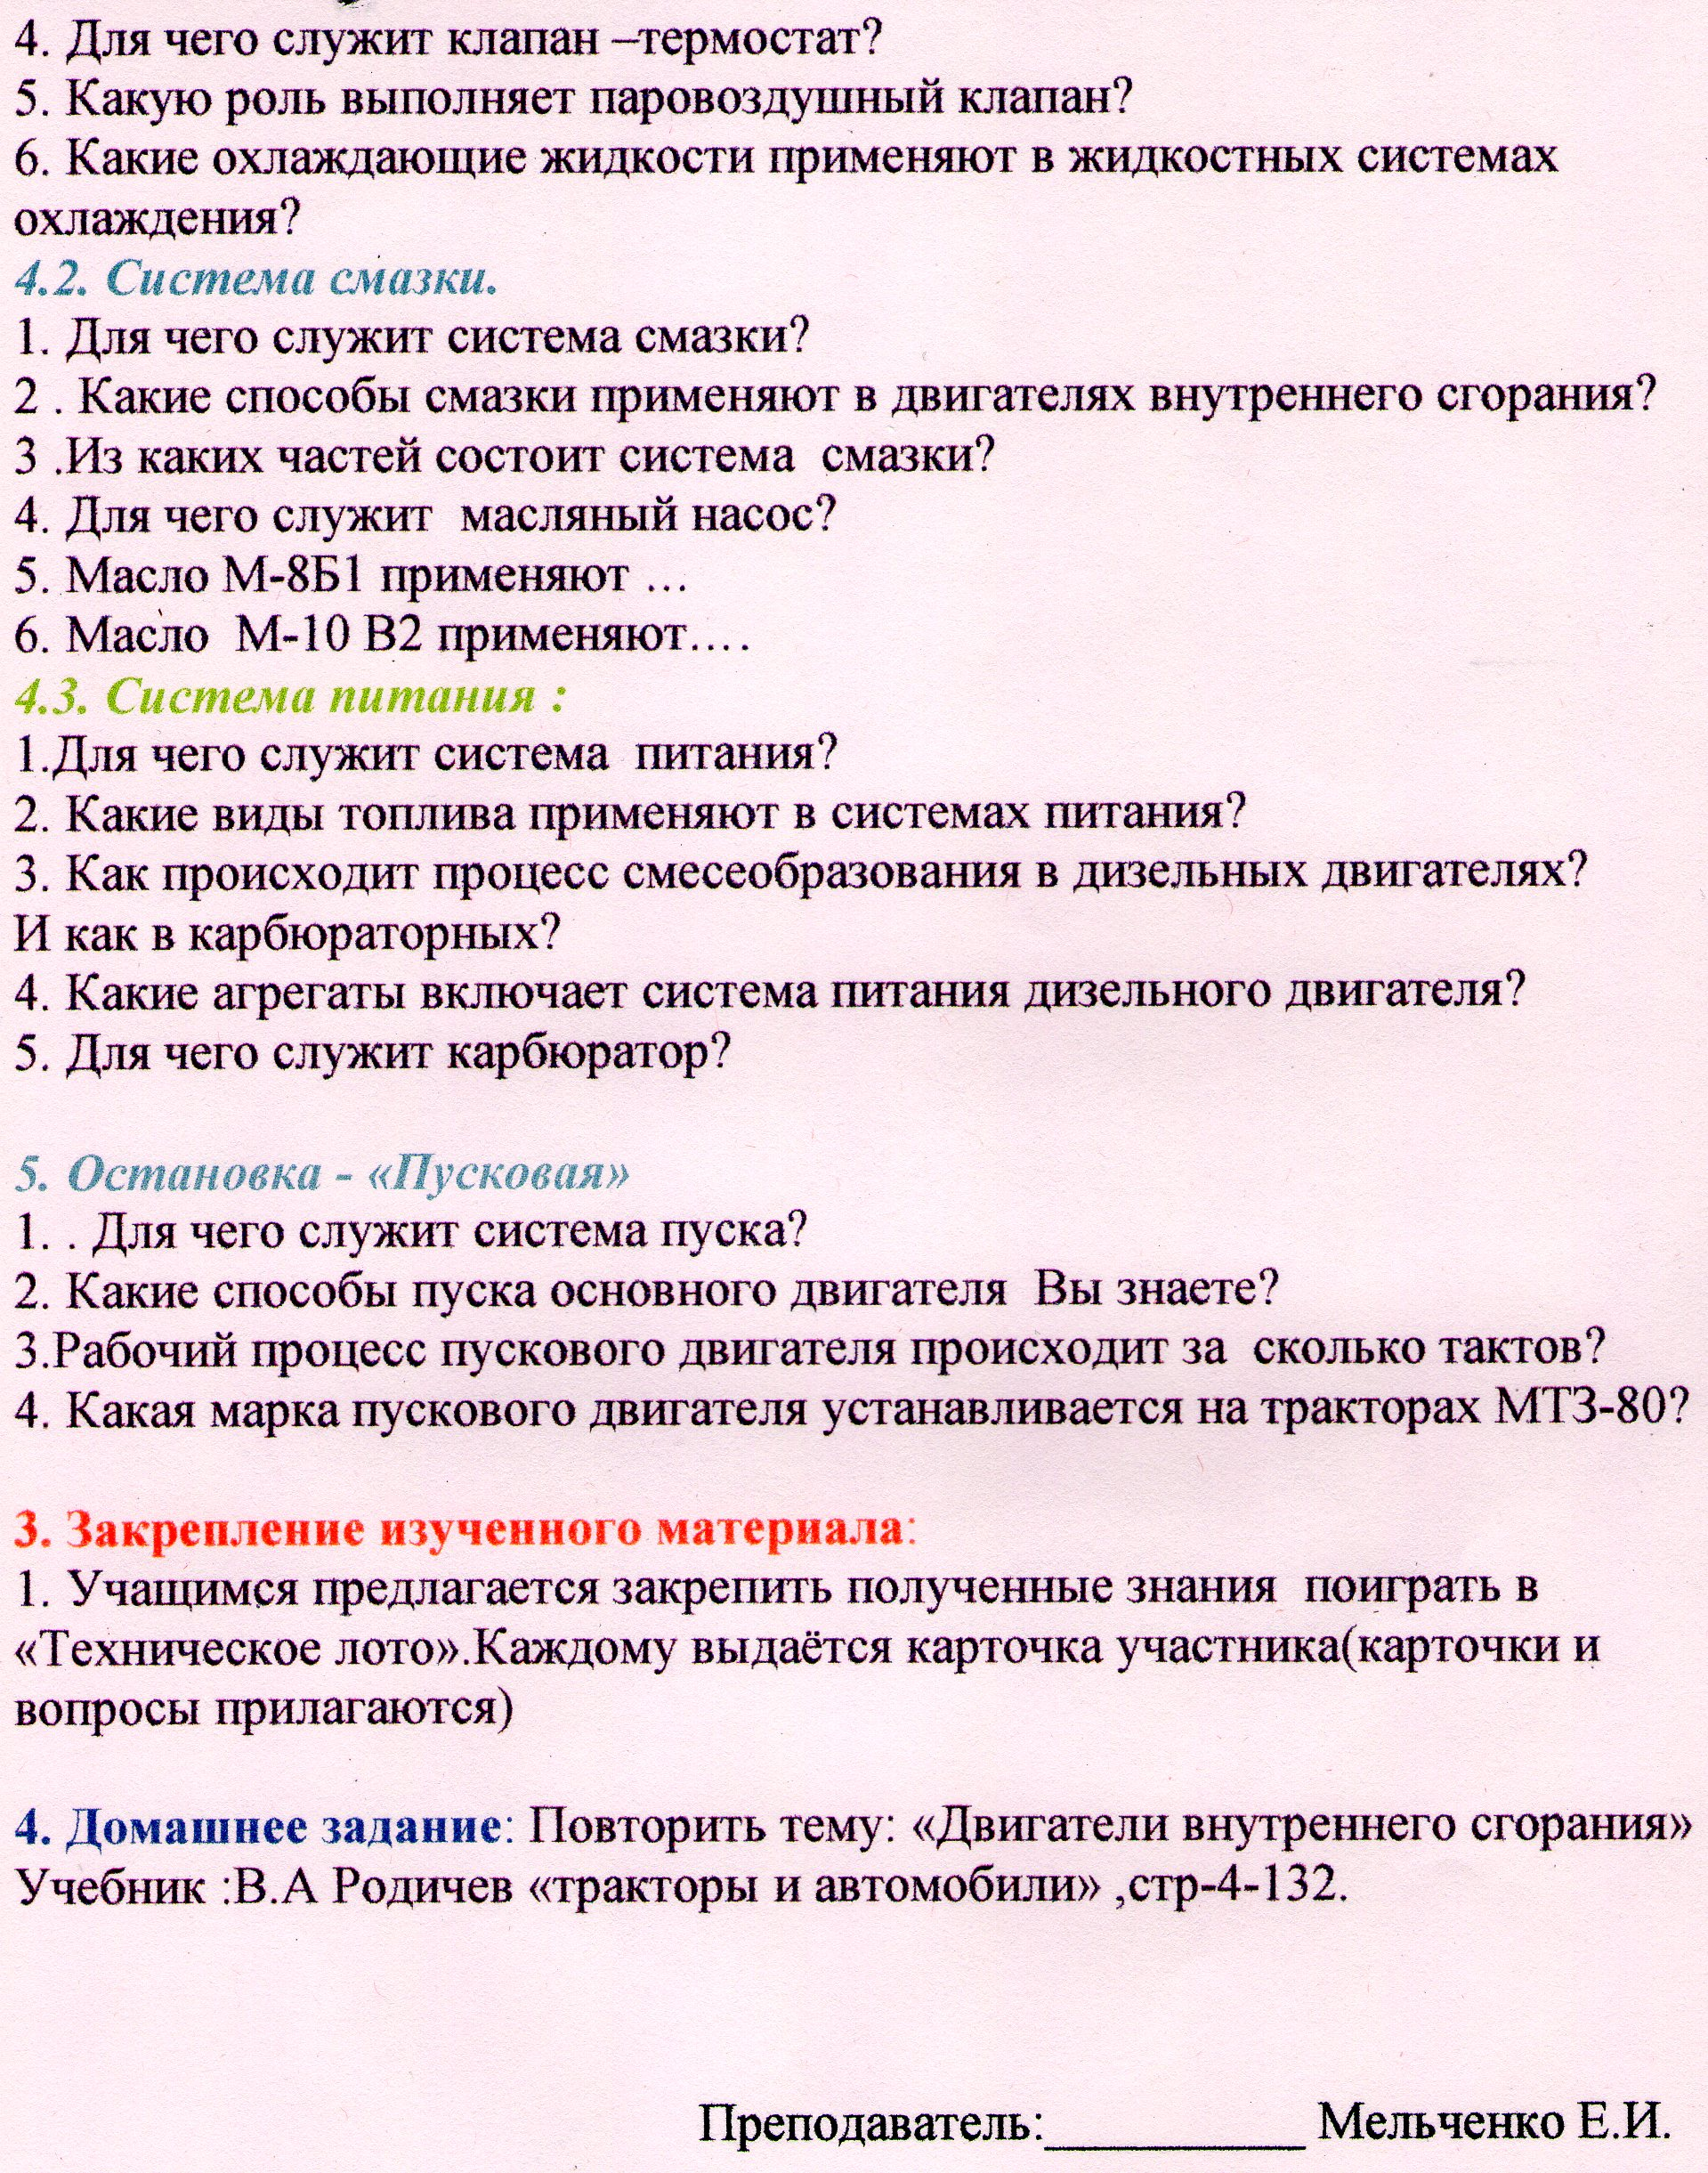 C:\Users\Василий Мельченко\Pictures\img507.jpg